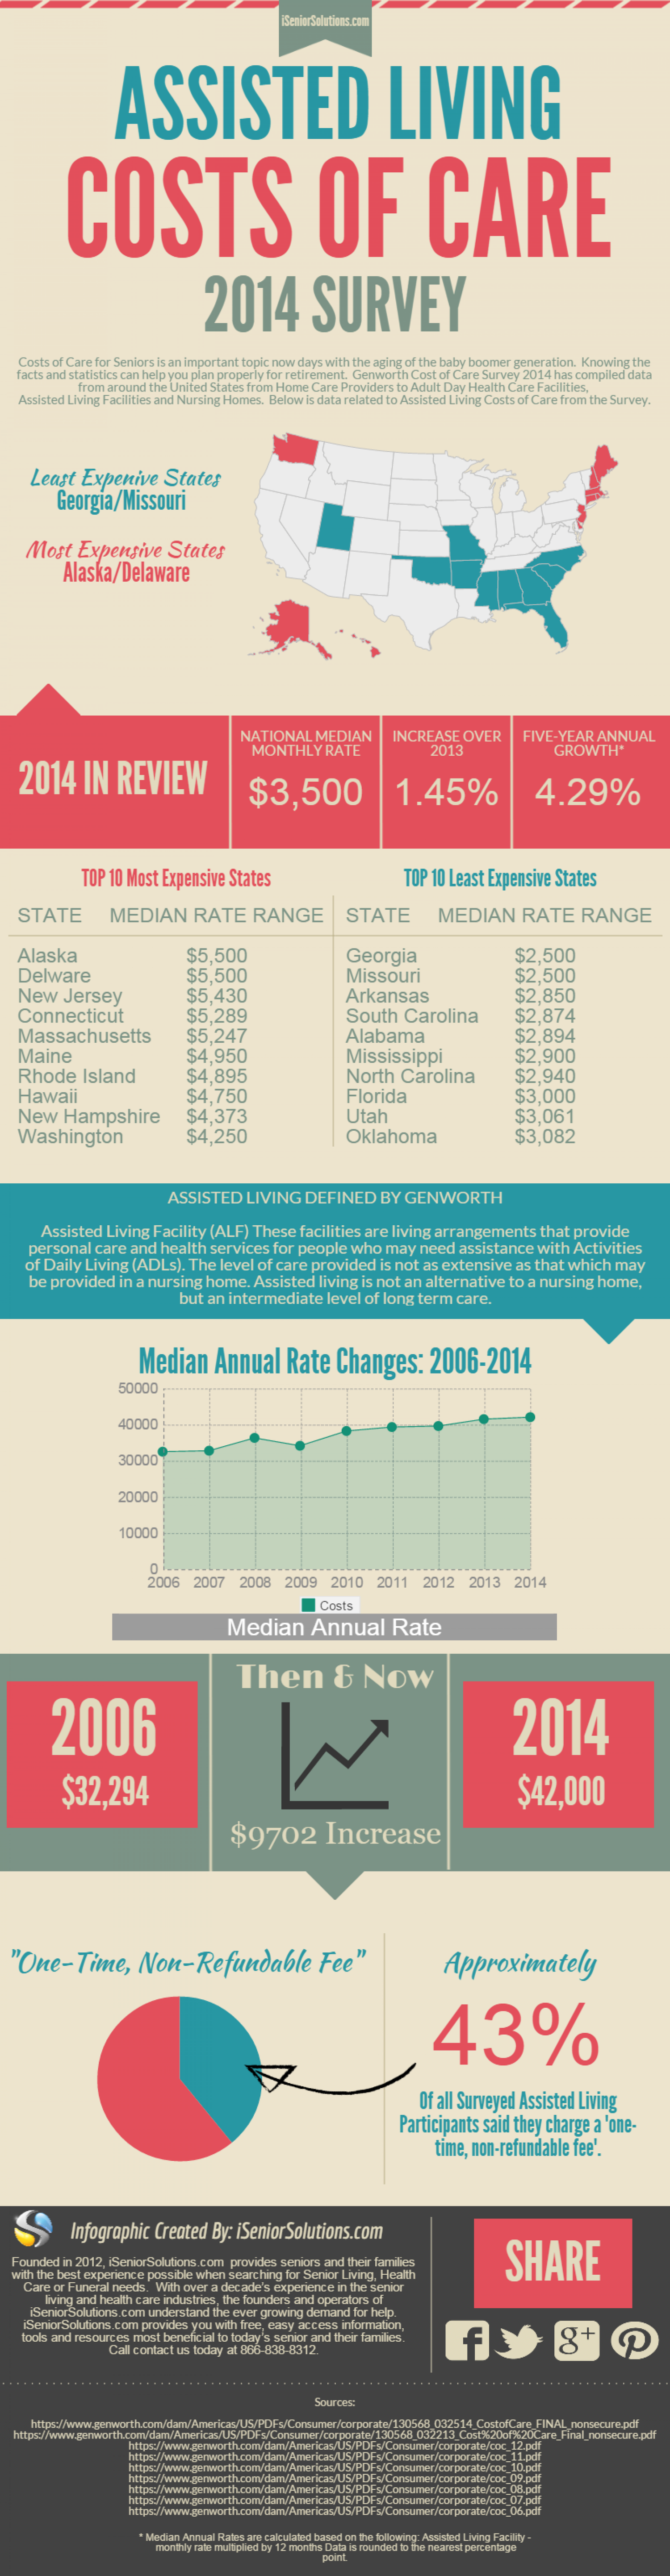 Assisted Living Costs of Care - 2014 Genworth Survey Data Infographic